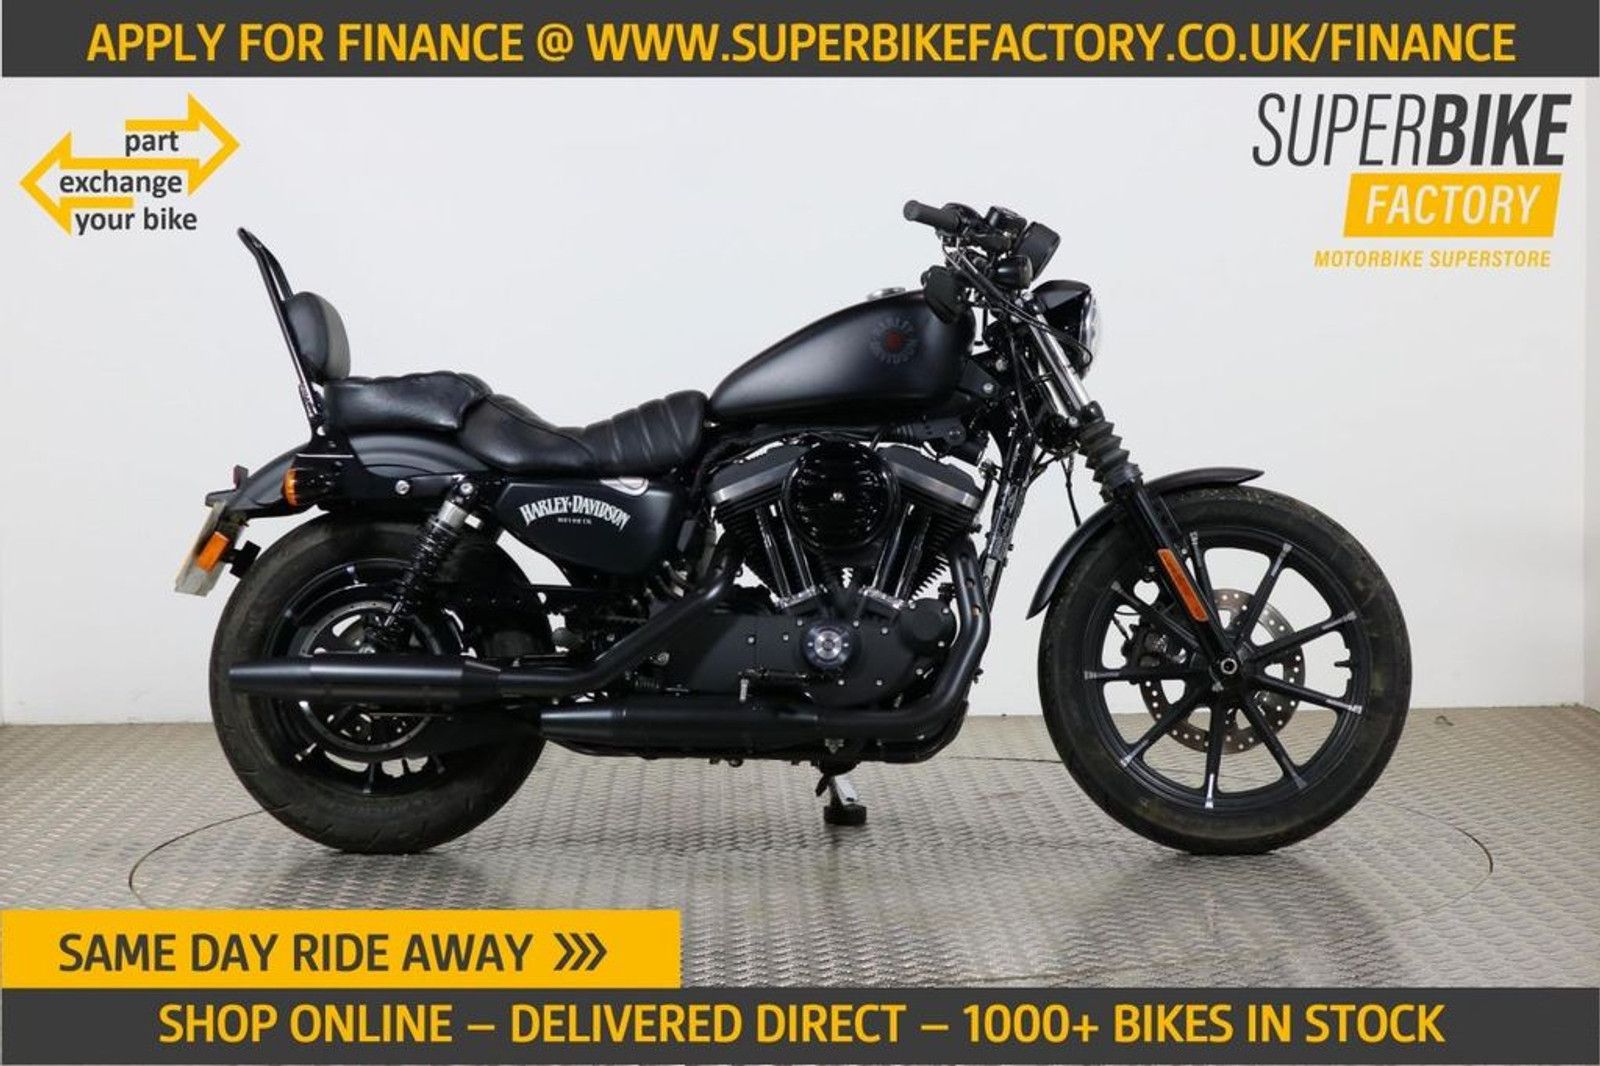 2020 Harley Davidson Sportster Iron 883part Ex Your Bike With 593 Miles Used Motorbikes Dealer Macclesfield Cheshire The Superbike Factory